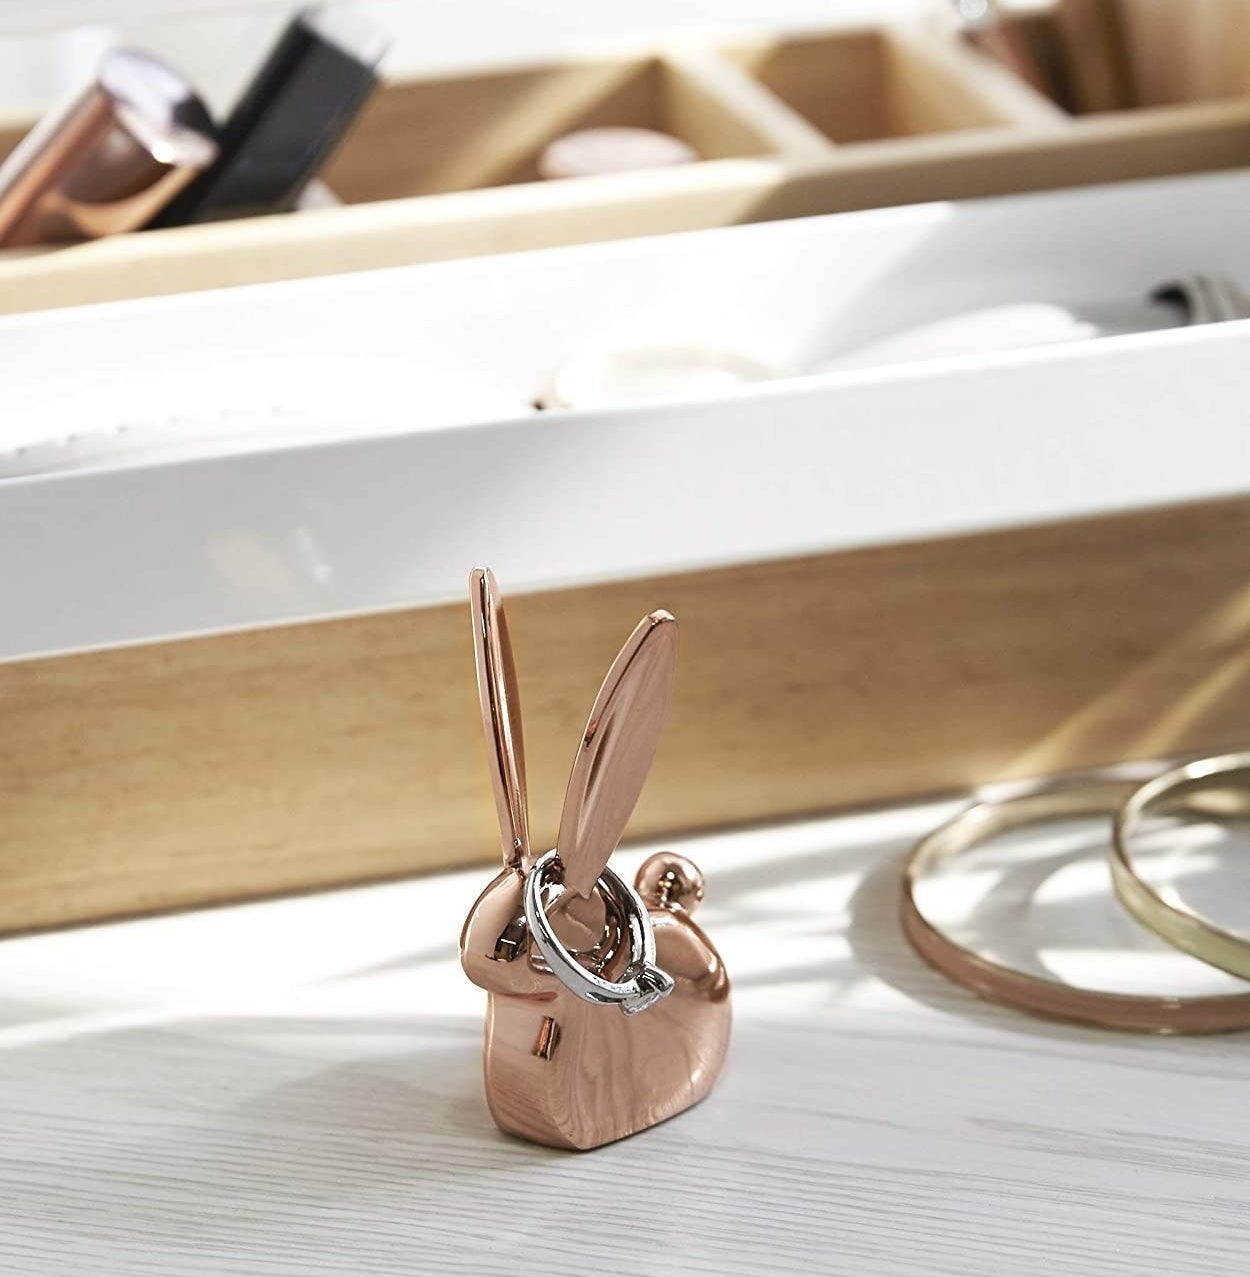 A rabbit-shaped ring holder on a dresser